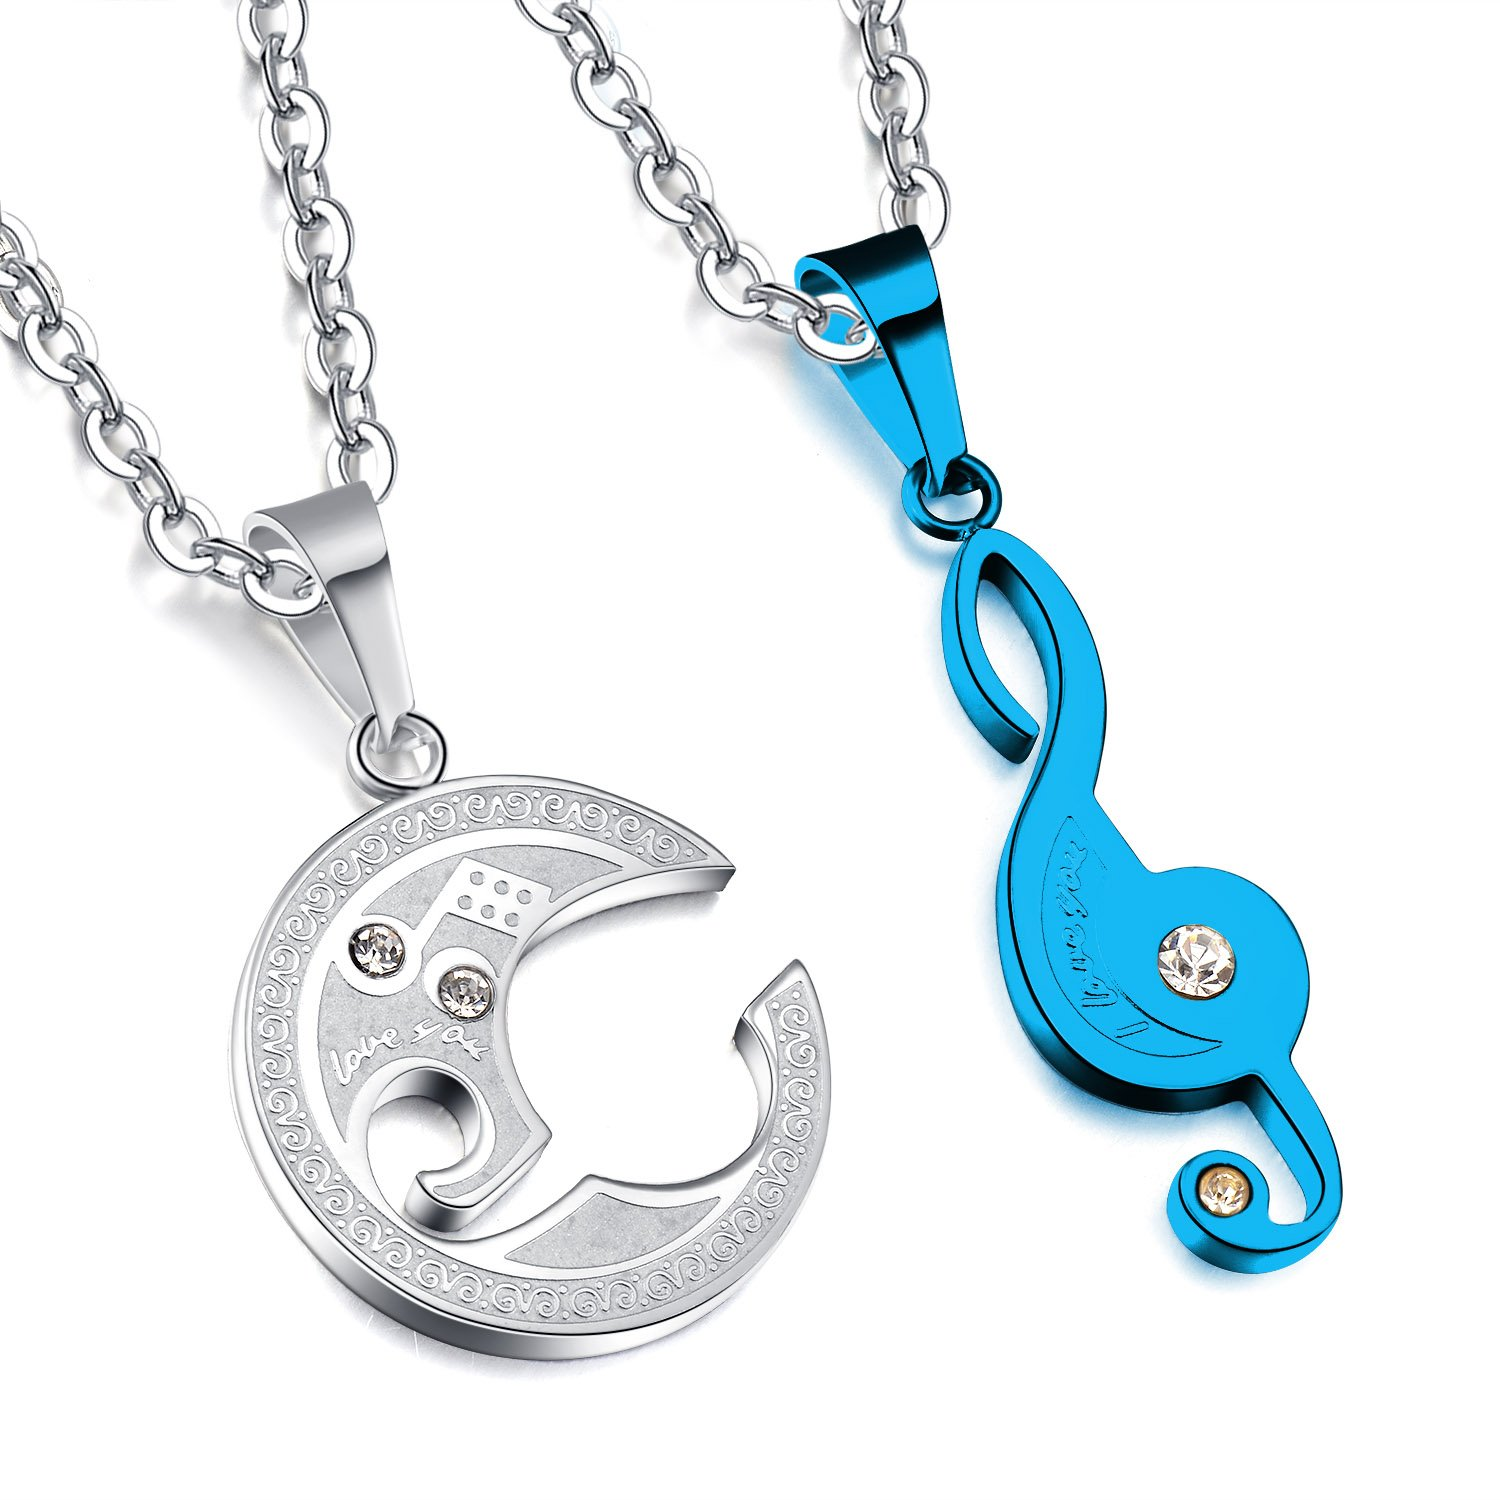 music pendant ball comic jewellery chain bad product online